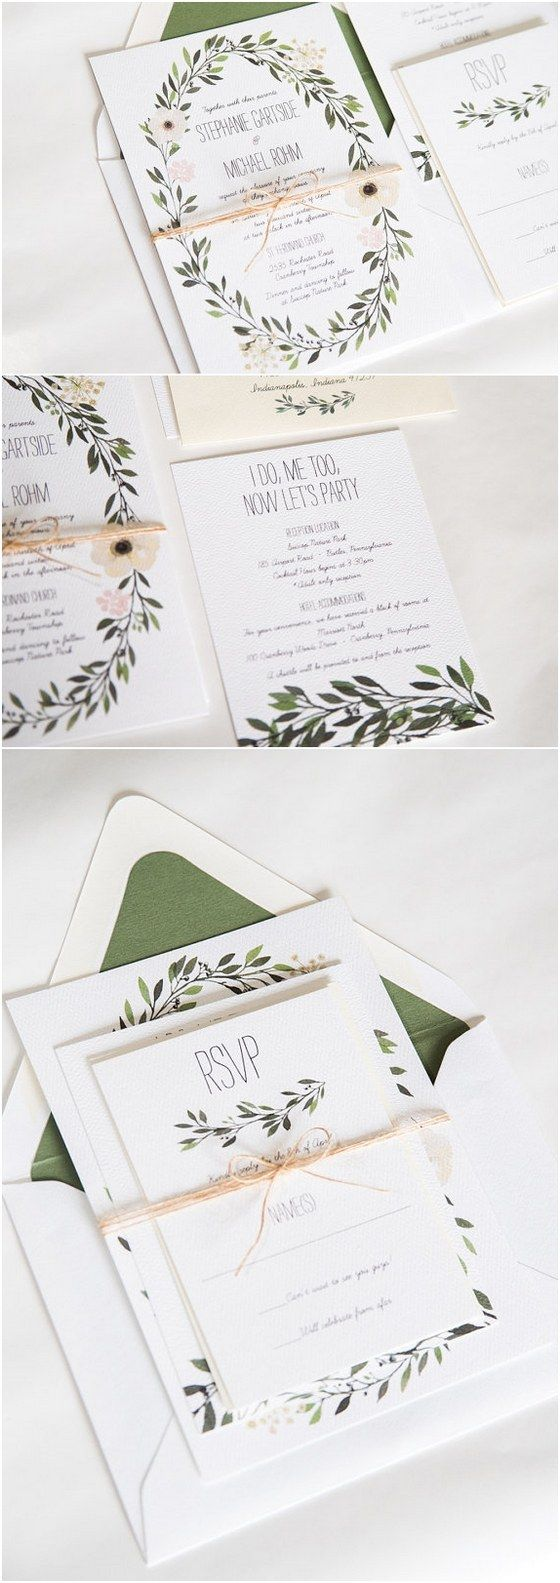 wedding party invitation message%0A    Watercolor Wedding Invitation Ideas You Will Love   Greenery  Wreaths  and Watercolor